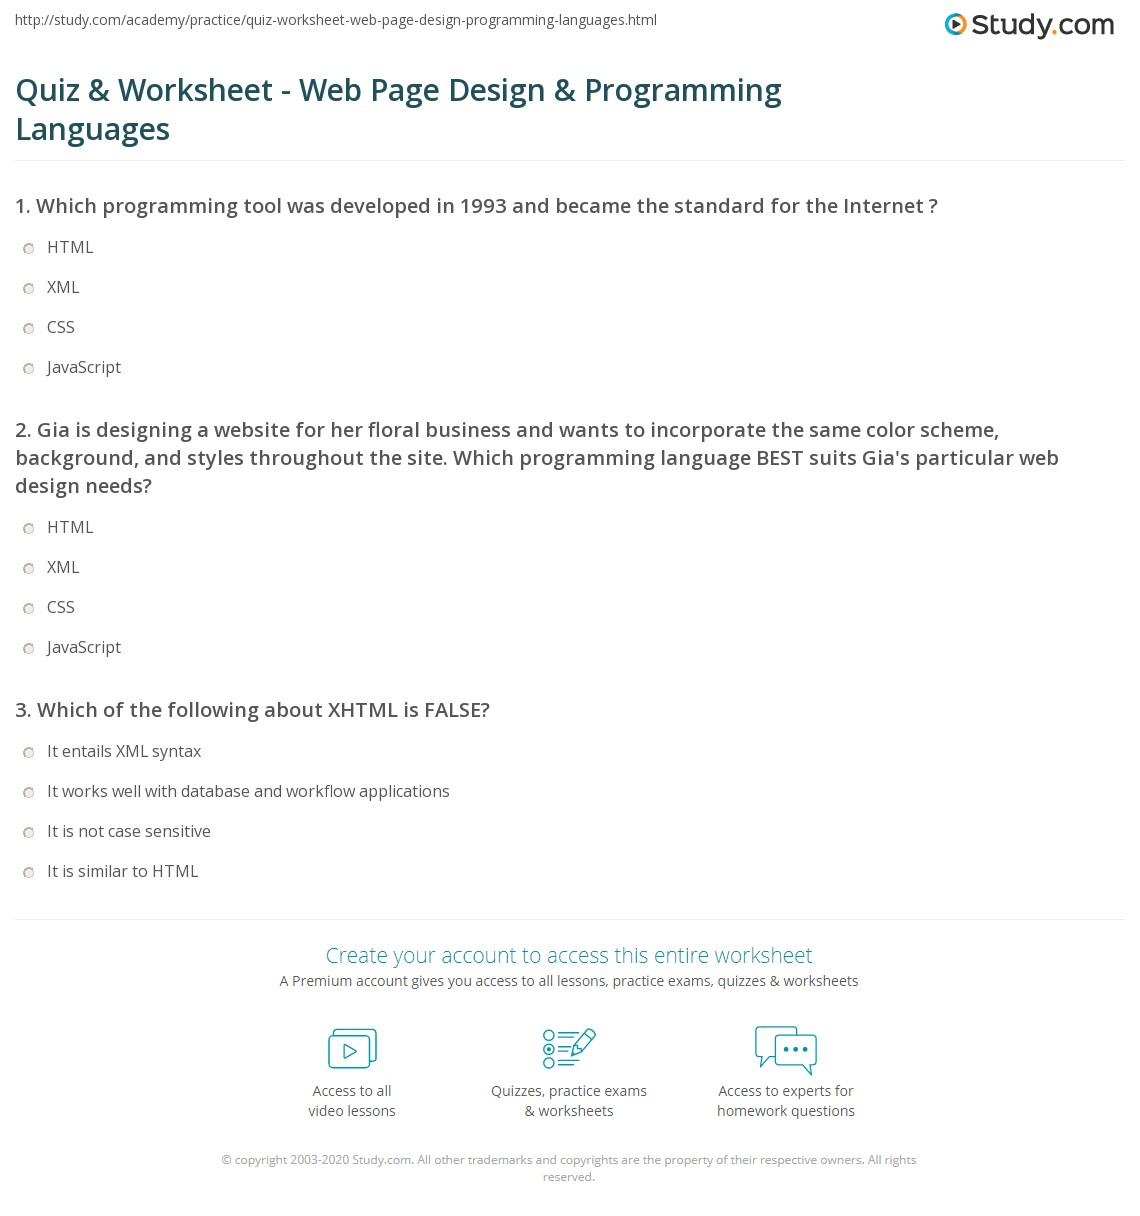 Quiz & Worksheet - Web Page Design & Programming Languages